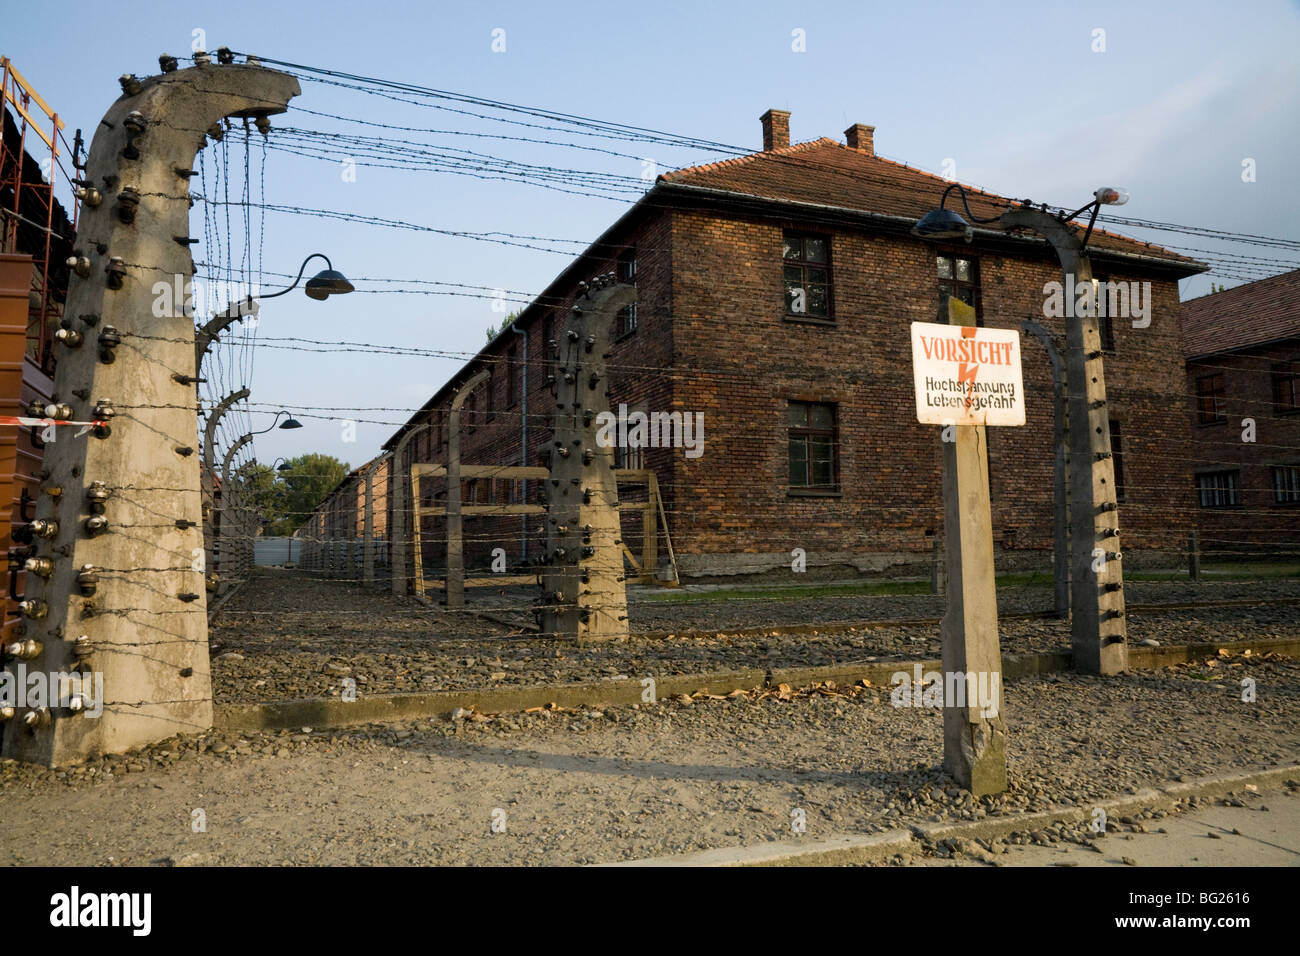 Death On Electric Fence Great Installation Of Wiring Diagram Electrical For Perimeter Warning Sign At Auschwitz Nazi Camp Rh Alamy Com Funny